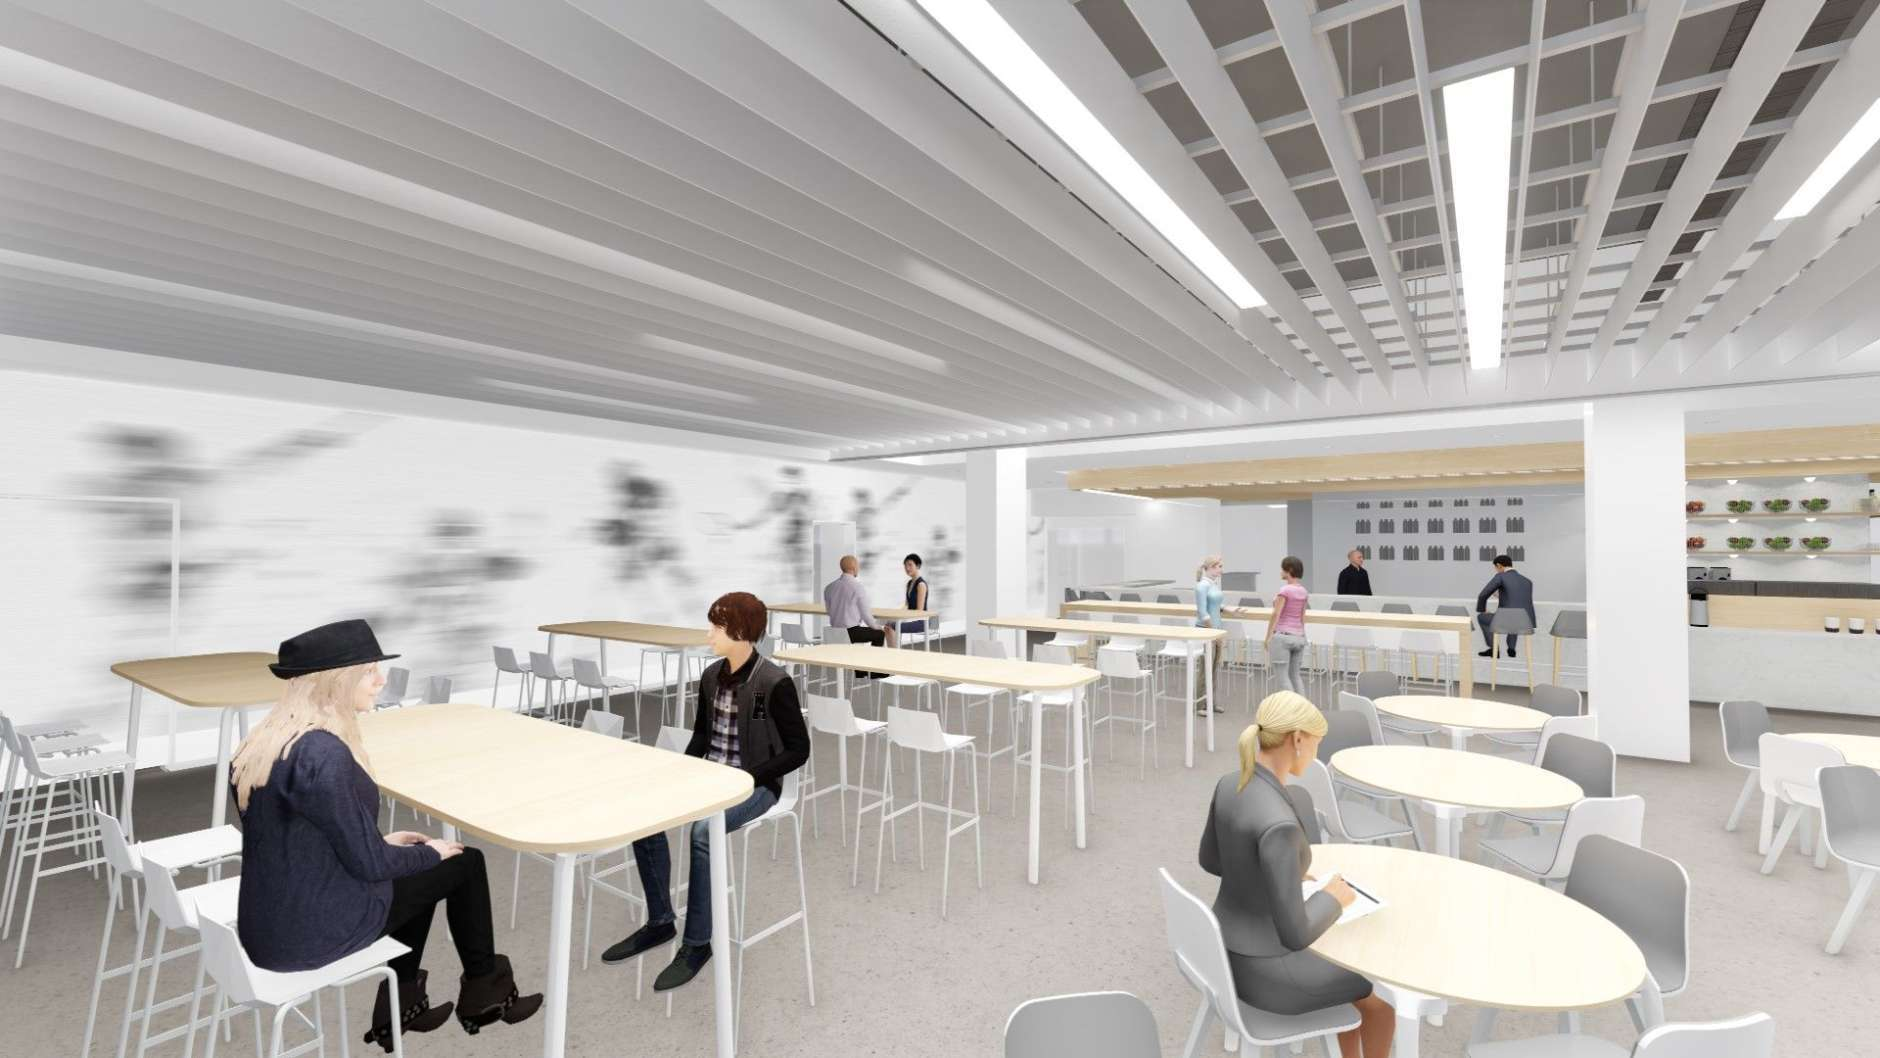 Mendelsohn's restaurant at The St. James will be open to both members and the public. (Courtesy HKS Architects)